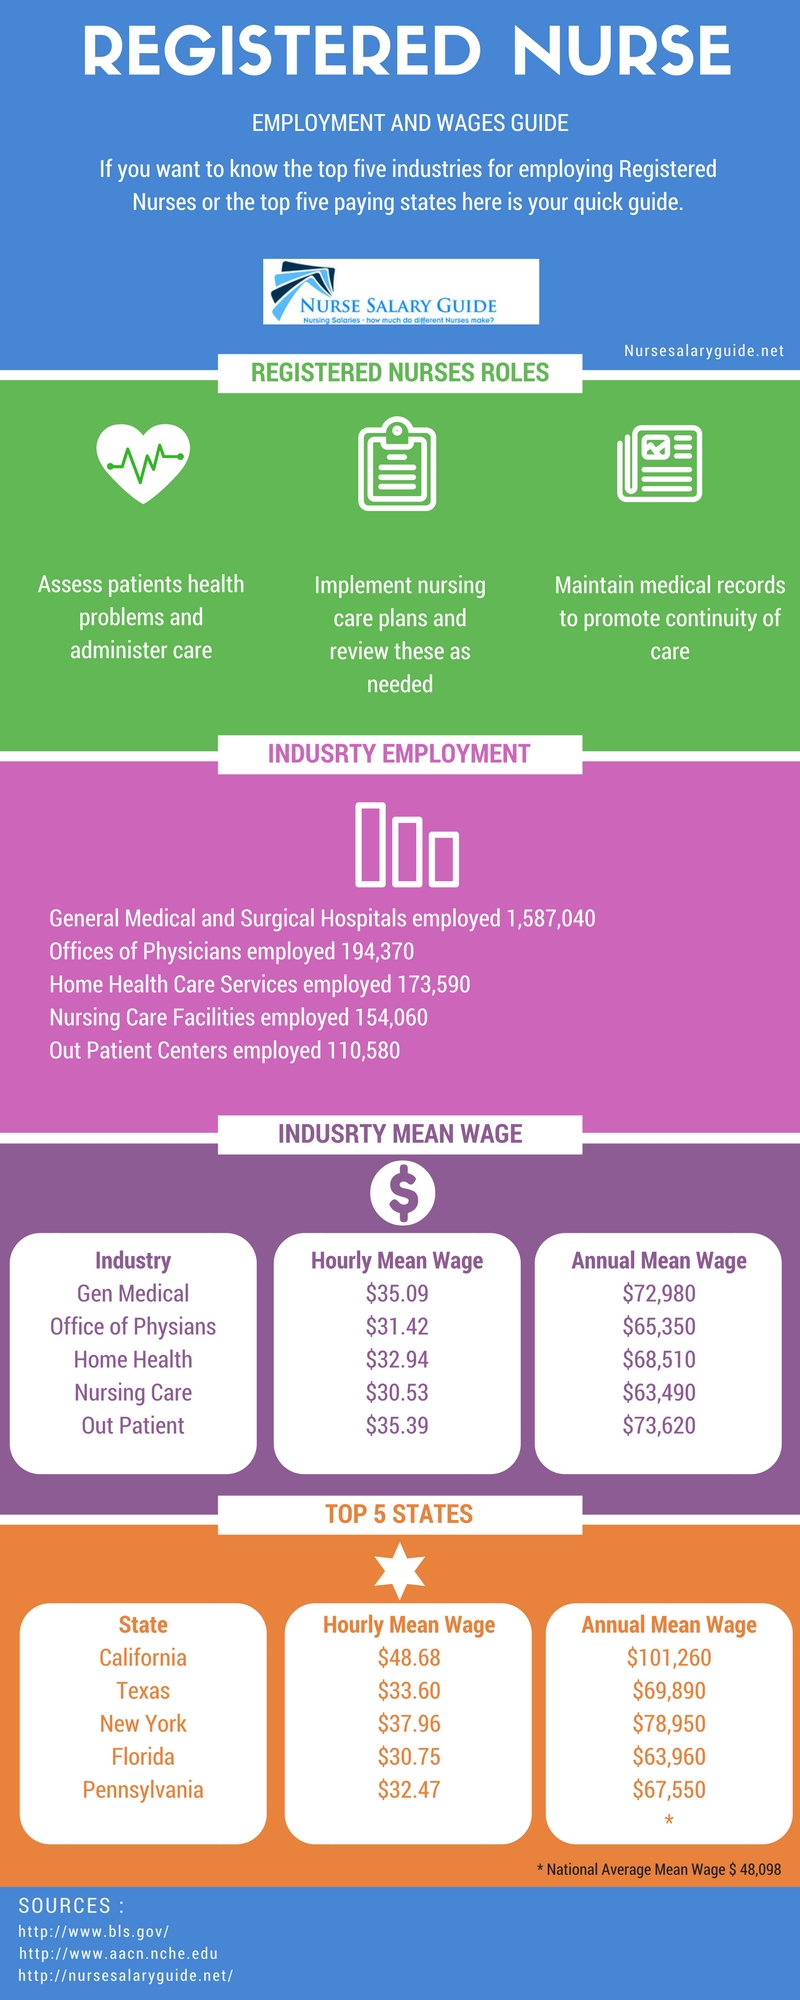 Registered Nurse Salary Guide